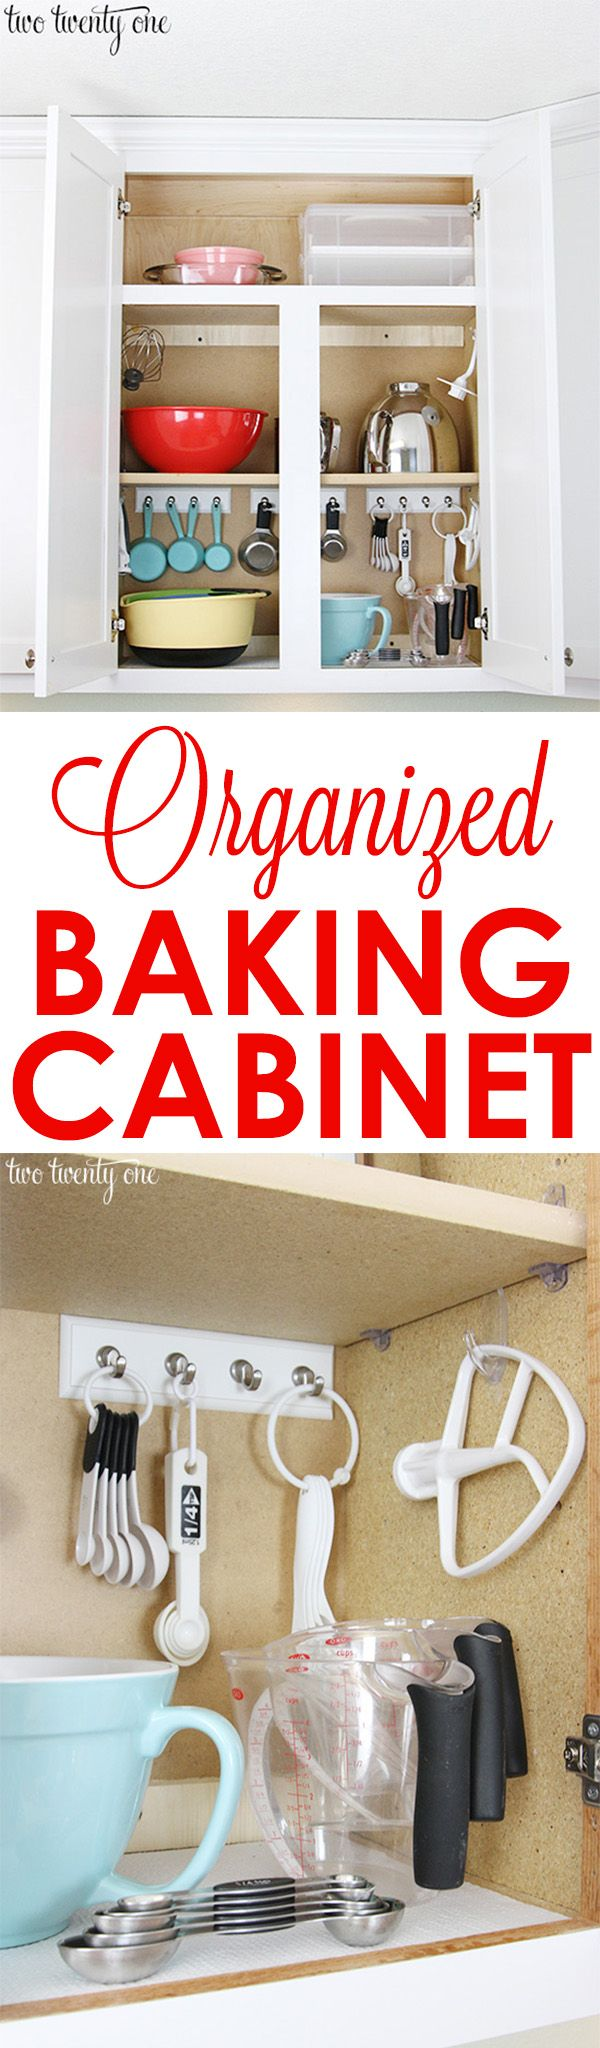 organized baking cabinet baking organizationpantry organizationpantry ideasorganizing - Organizing Kitchen Ideas